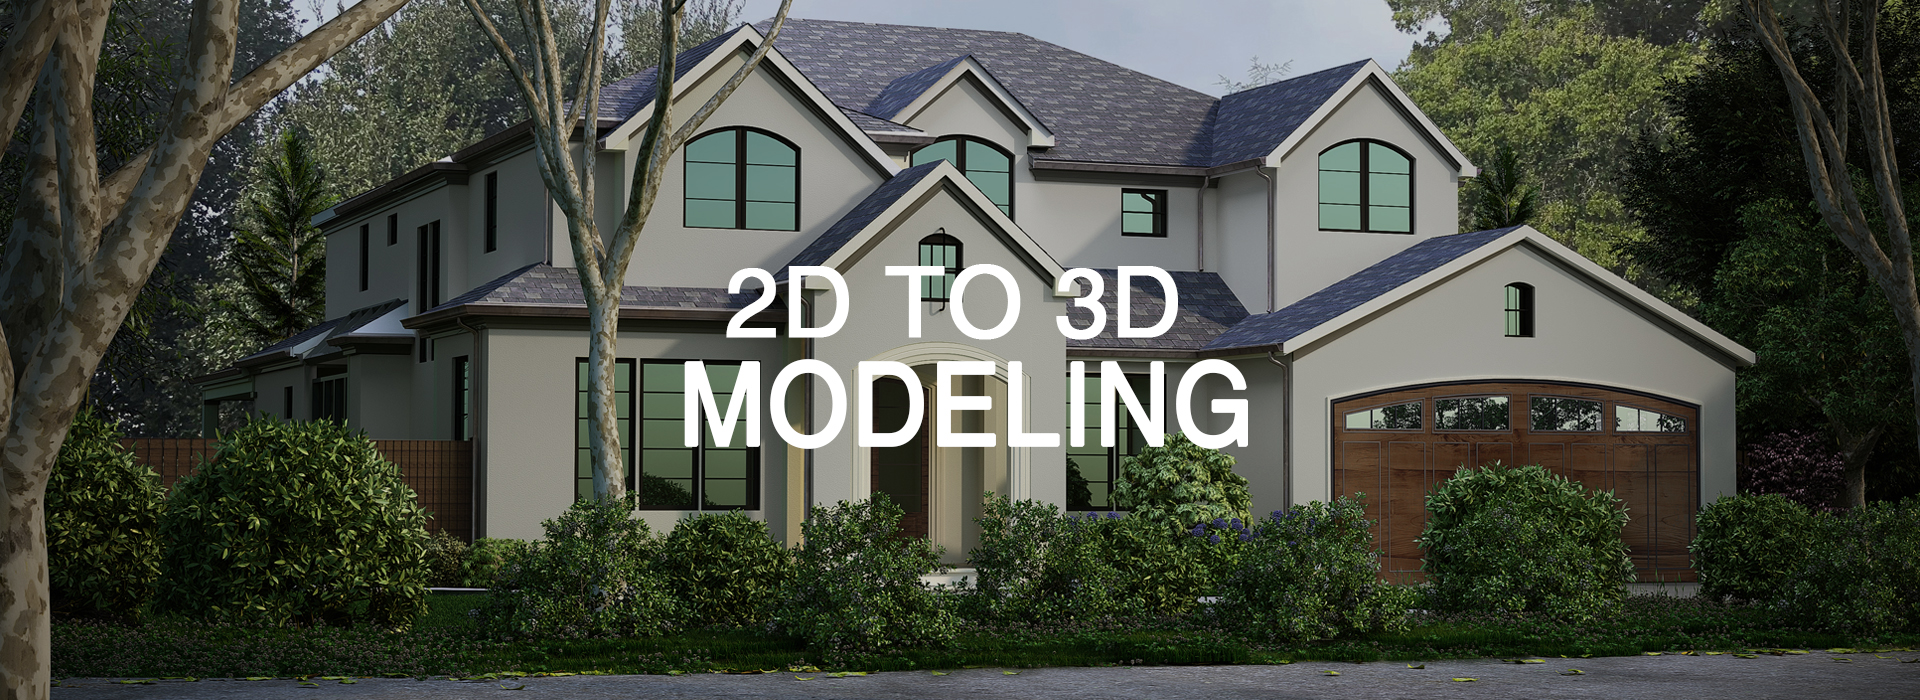 2D to 3D Modeling Services